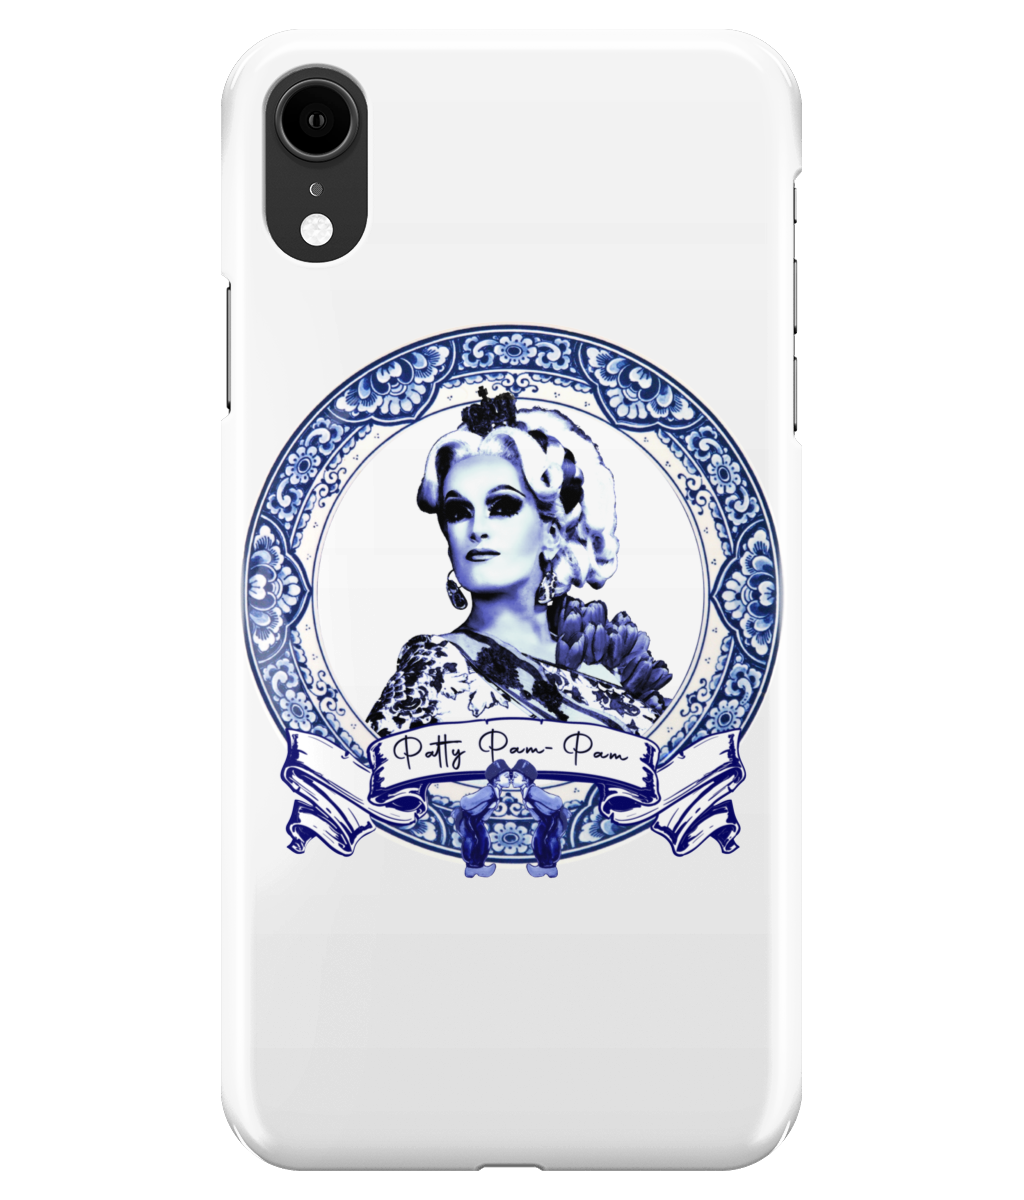 Patty Pam-Pam - Delft Blue Phone Case